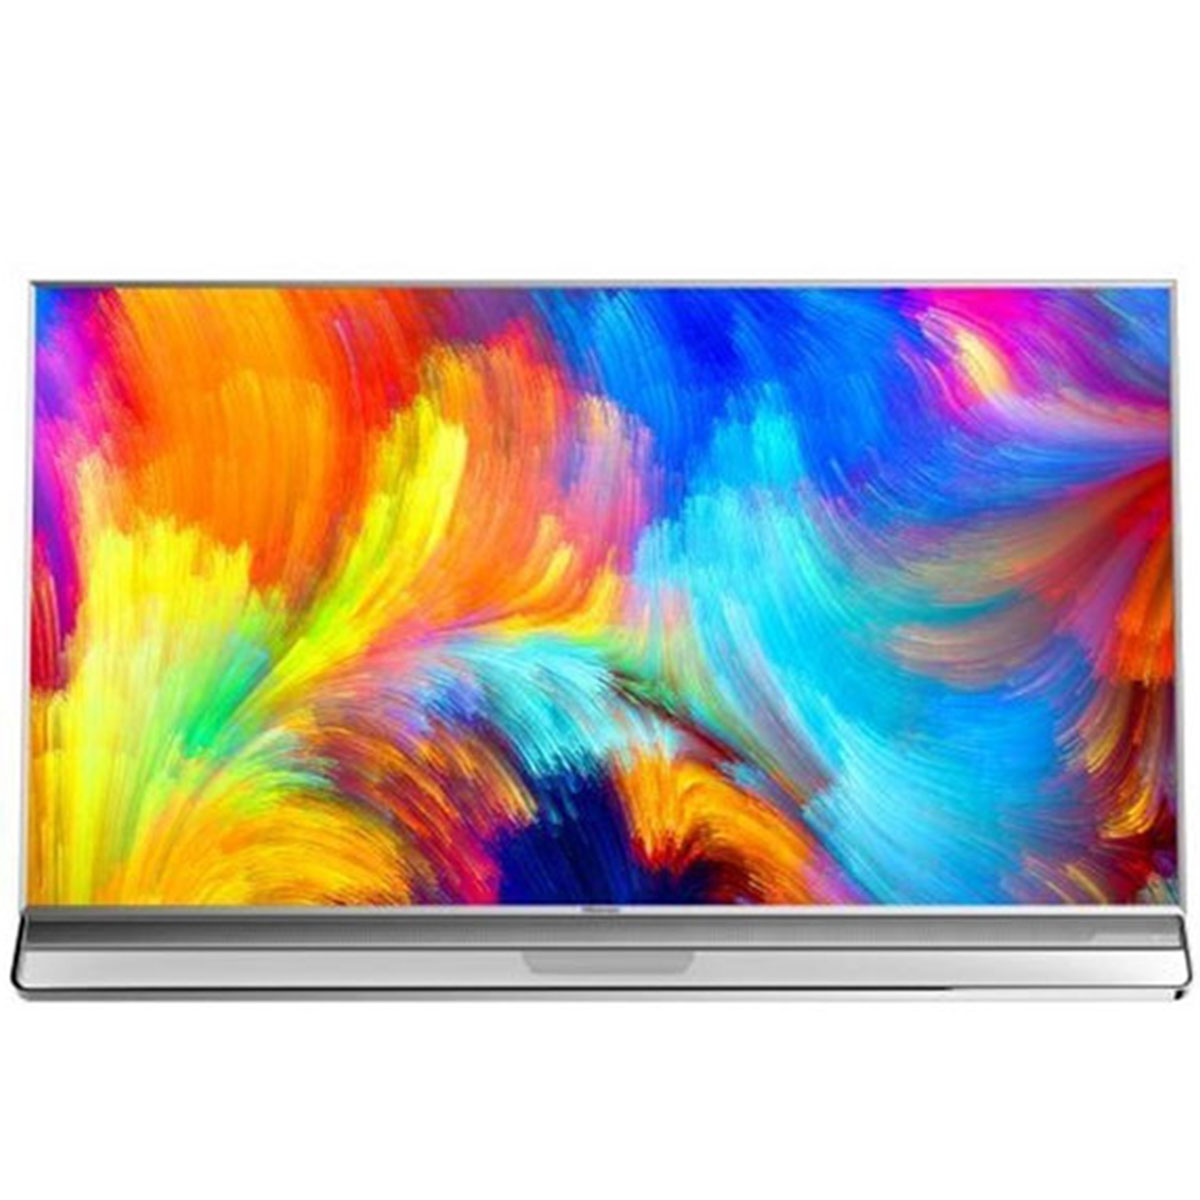 Hisense 75 Inch 4K UHD Smart LED TV (75U9A)